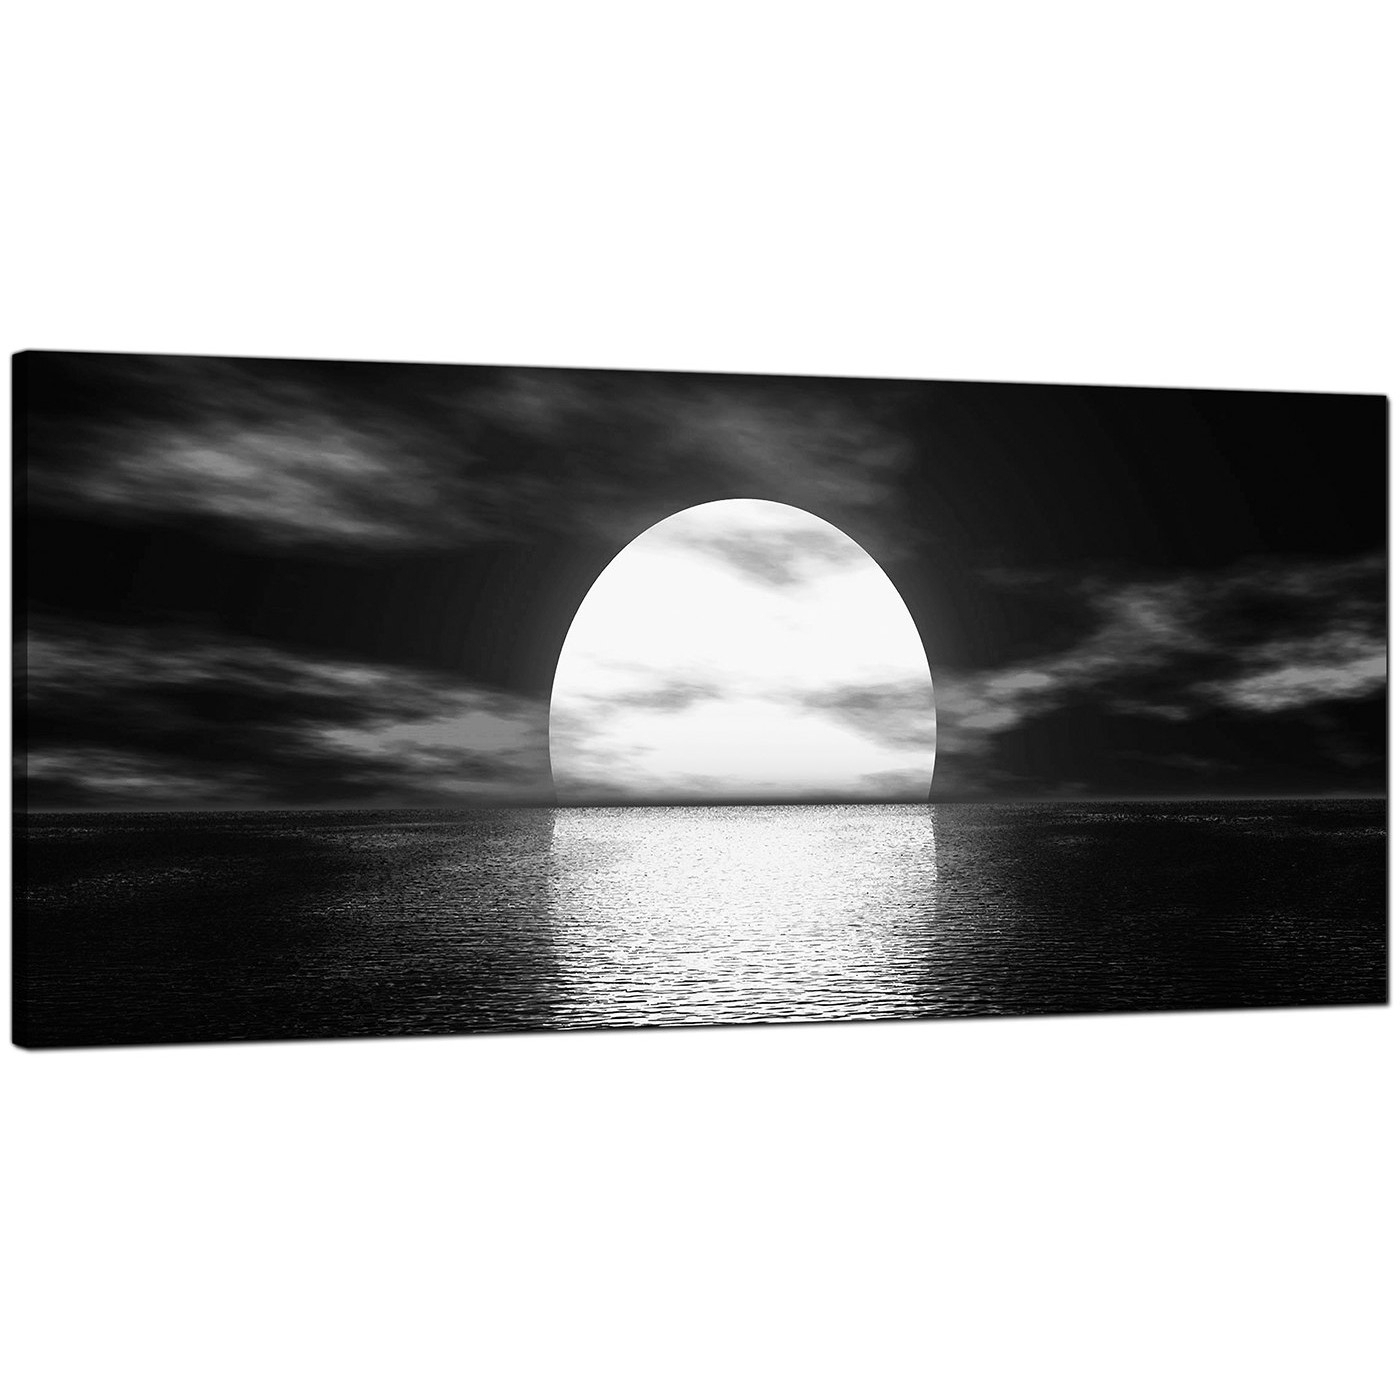 Modern Black And White Canvas Wall Art Of An Ocean Sunset Inside Newest Black And White Canvas Wall Art (View 8 of 15)